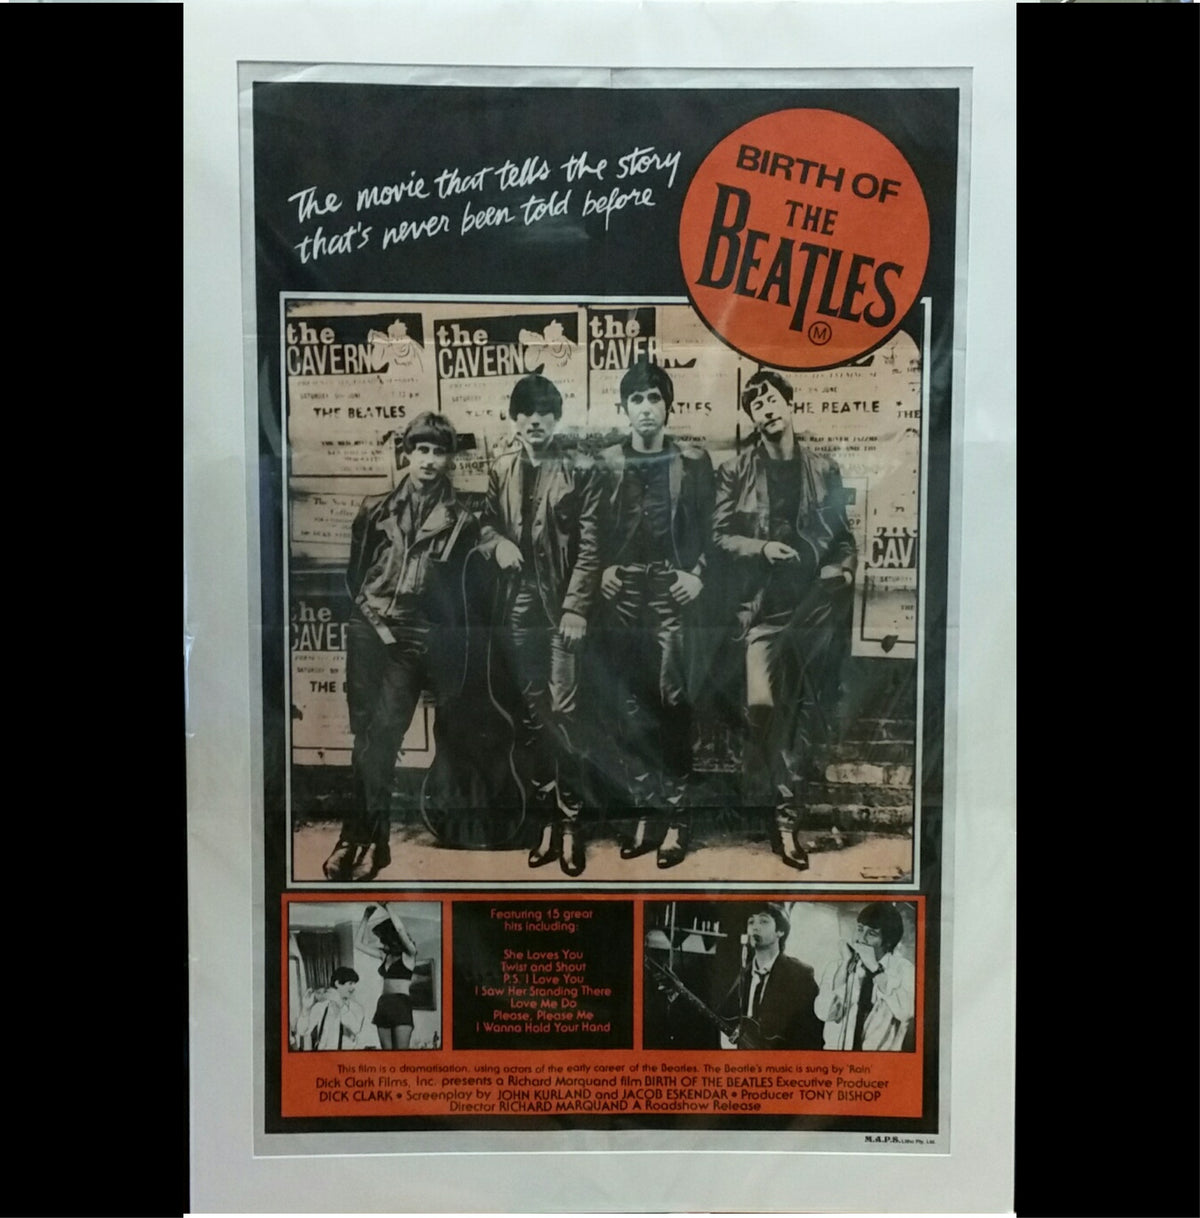 Movie Poster - Birth of the Beatles